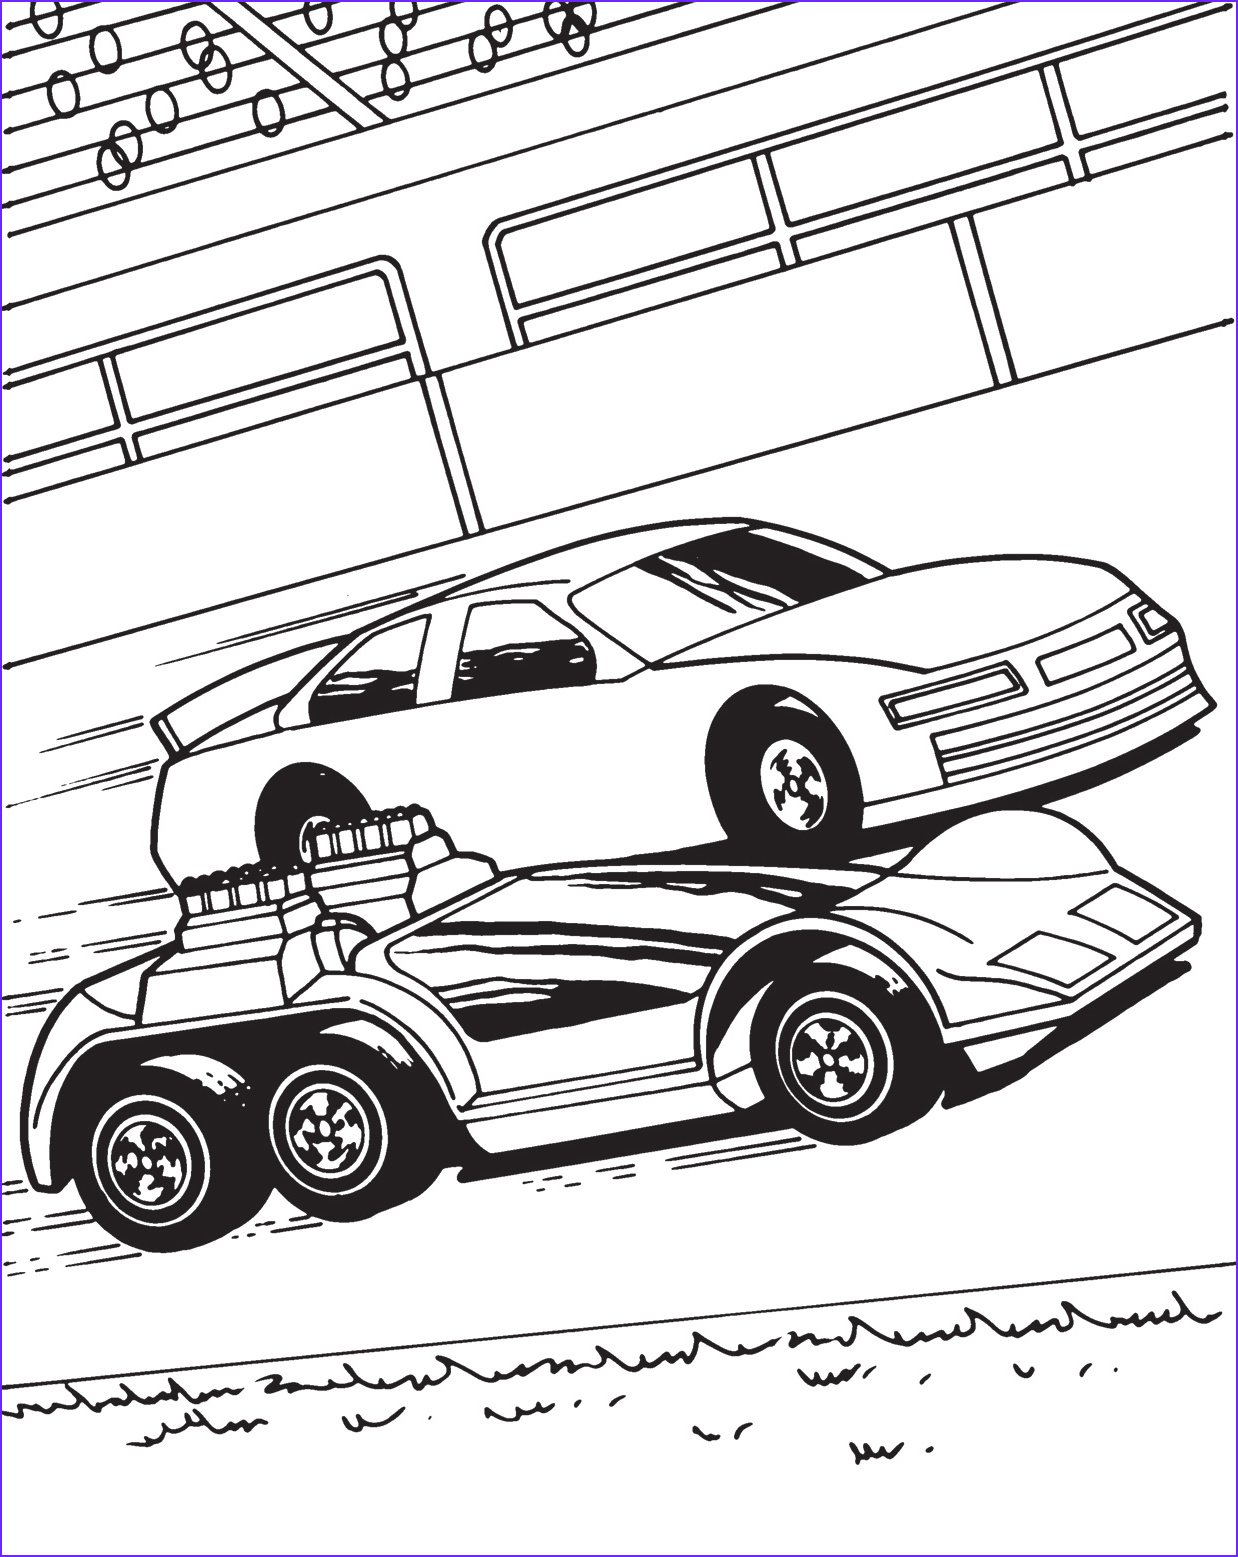 Race Car Coloring Sheets Elegant Collection Race Car Coloring Pages